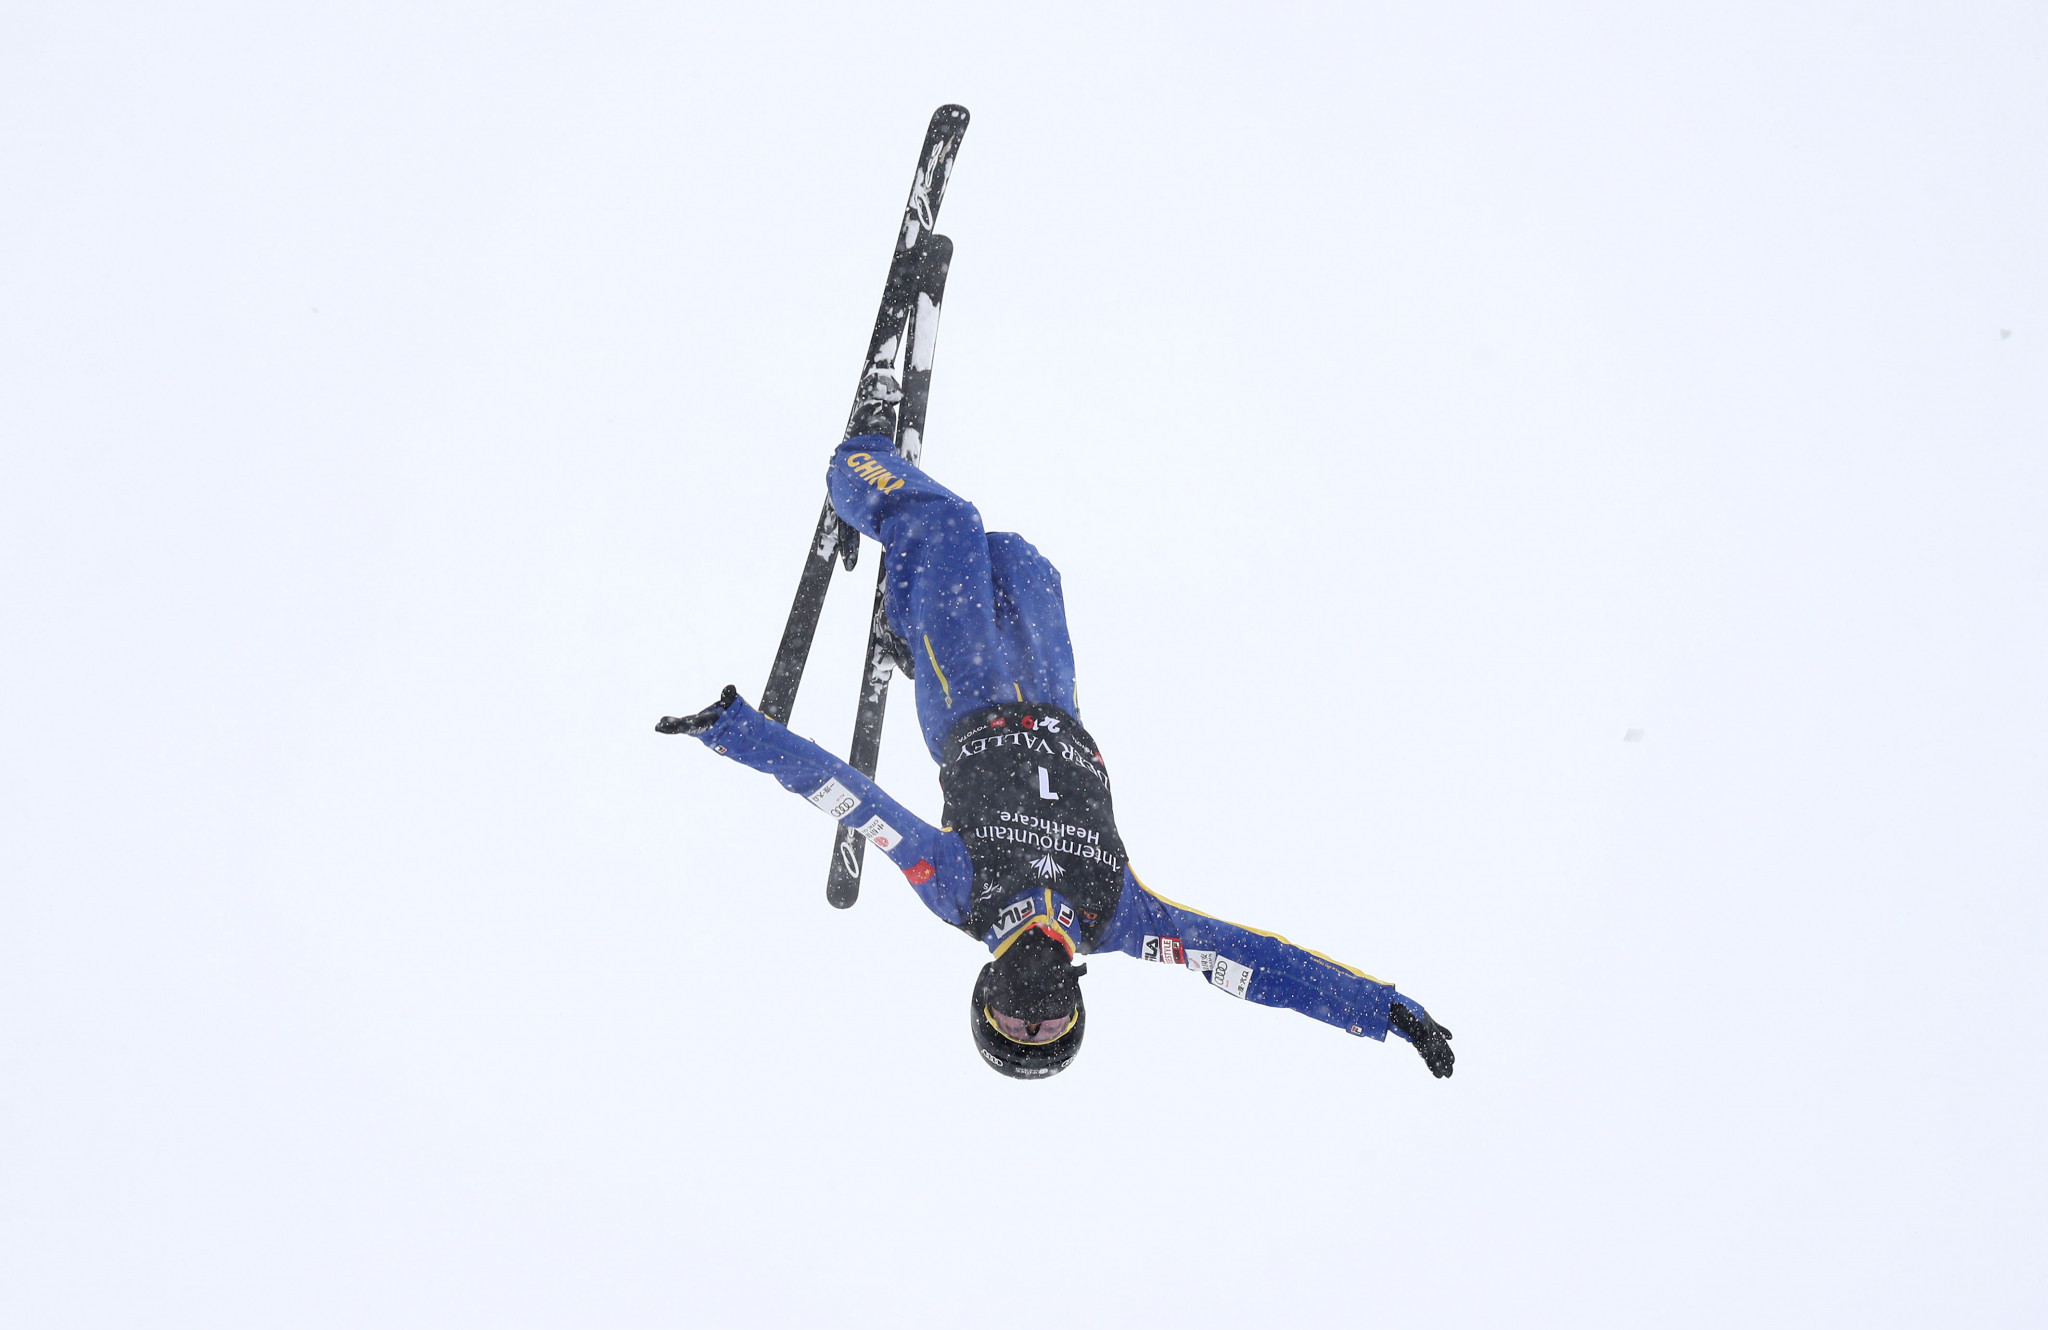 China's Qi and Xu make it back-to-back home wins at Aerials World Cup